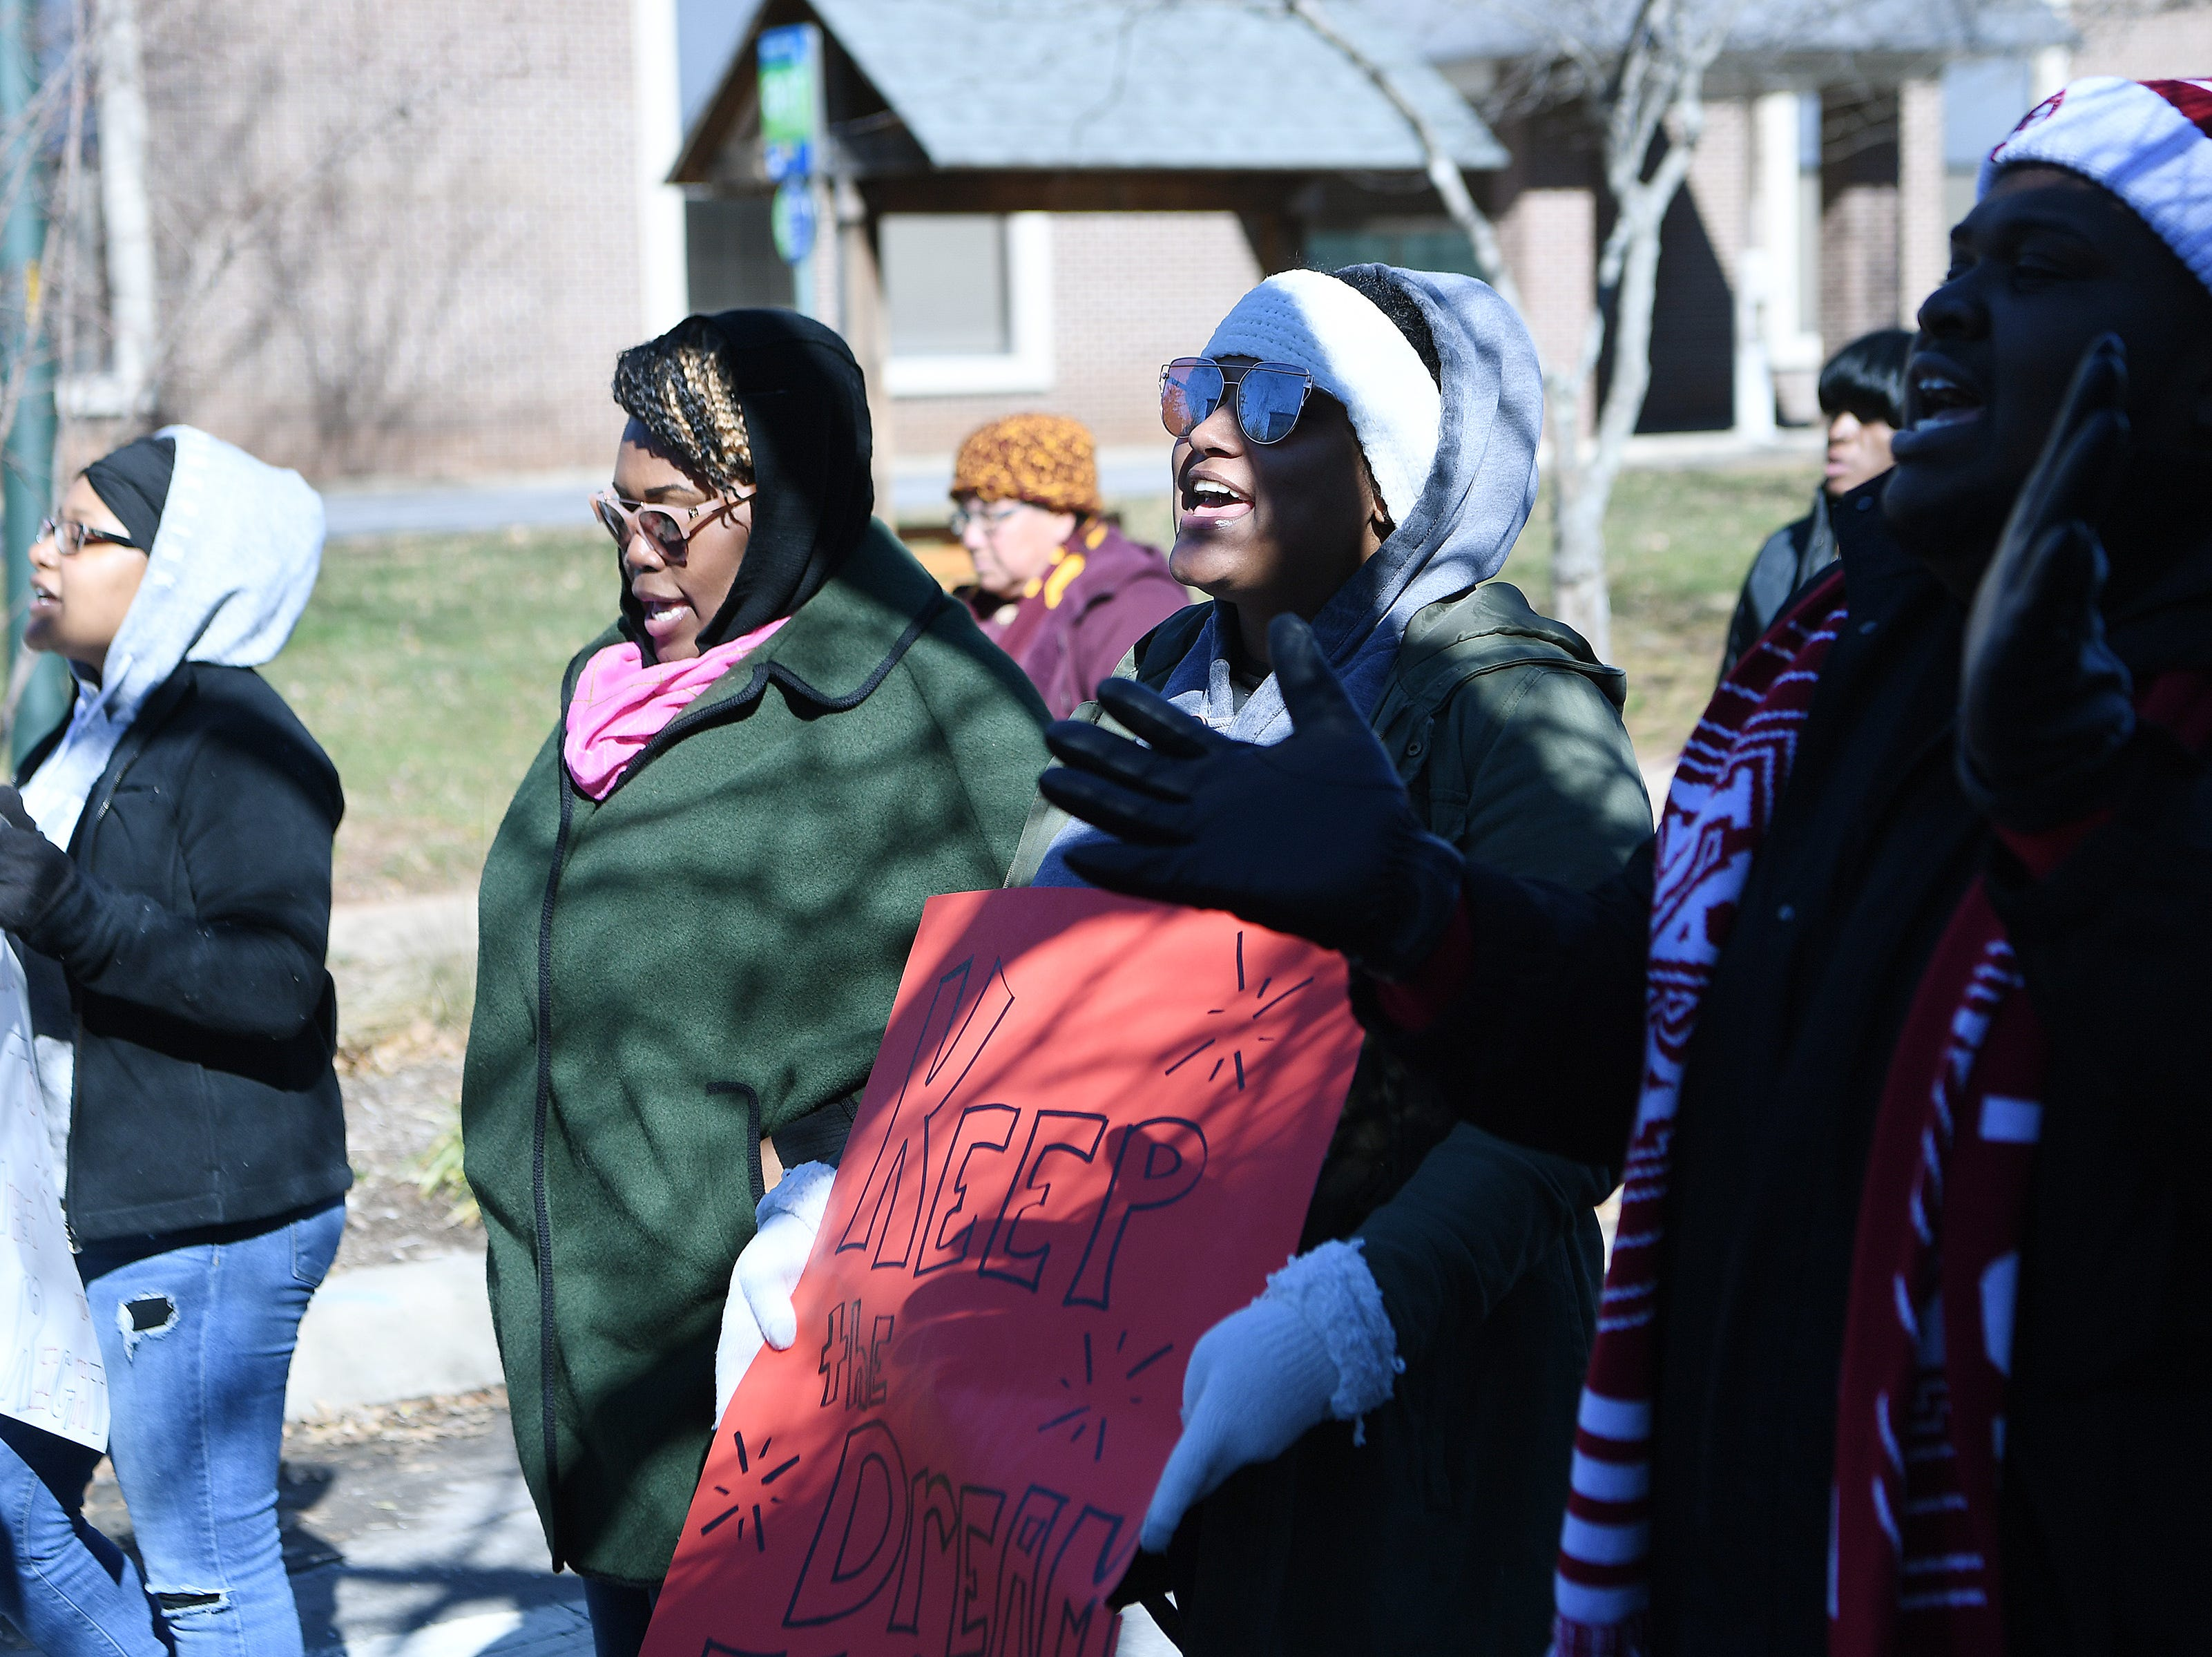 About 1,000 people braved below freezing temperatures to participate in the Dr. Martin Luther King, Jr. Peace March and Rally from St. James AME Church to Pack Square Park on Jan. 21, 2019.